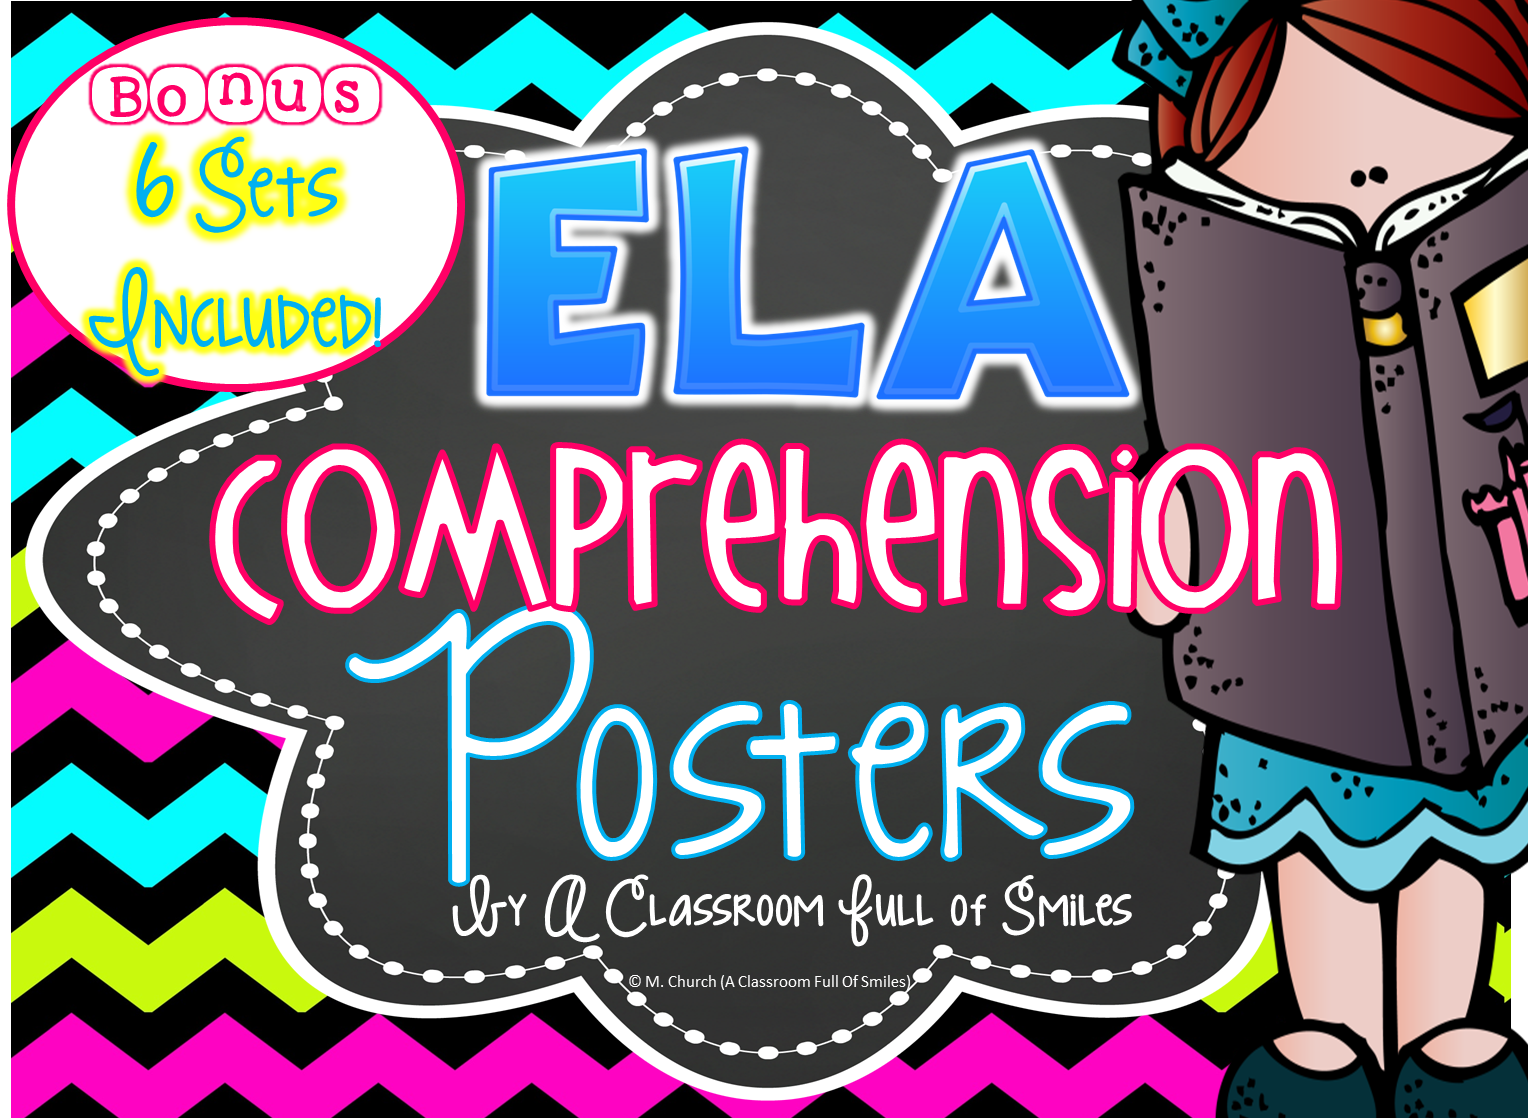 https://www.teacherspayteachers.com/Product/Reading-Comprehension-Posters-Bonus-6-Sets-Included-1256566